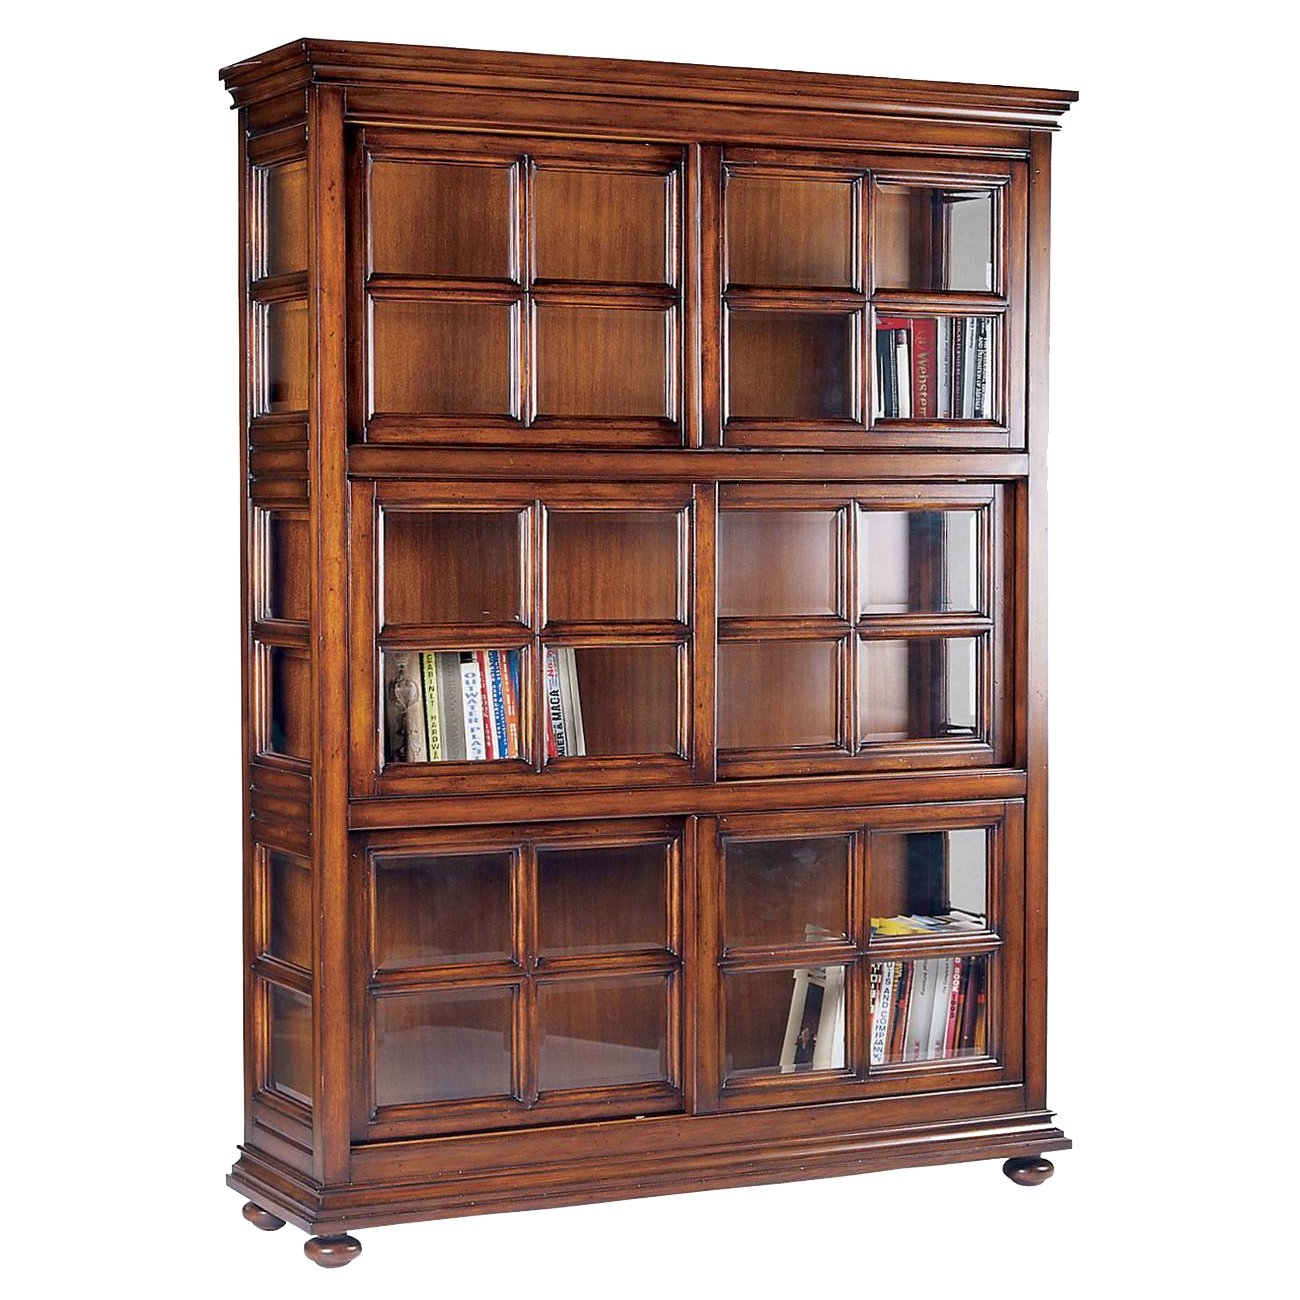 Brown Wooden Bookshelves Features Glass Door Of Cool Interior And For Wooden Bookshelves (#2 of 14)